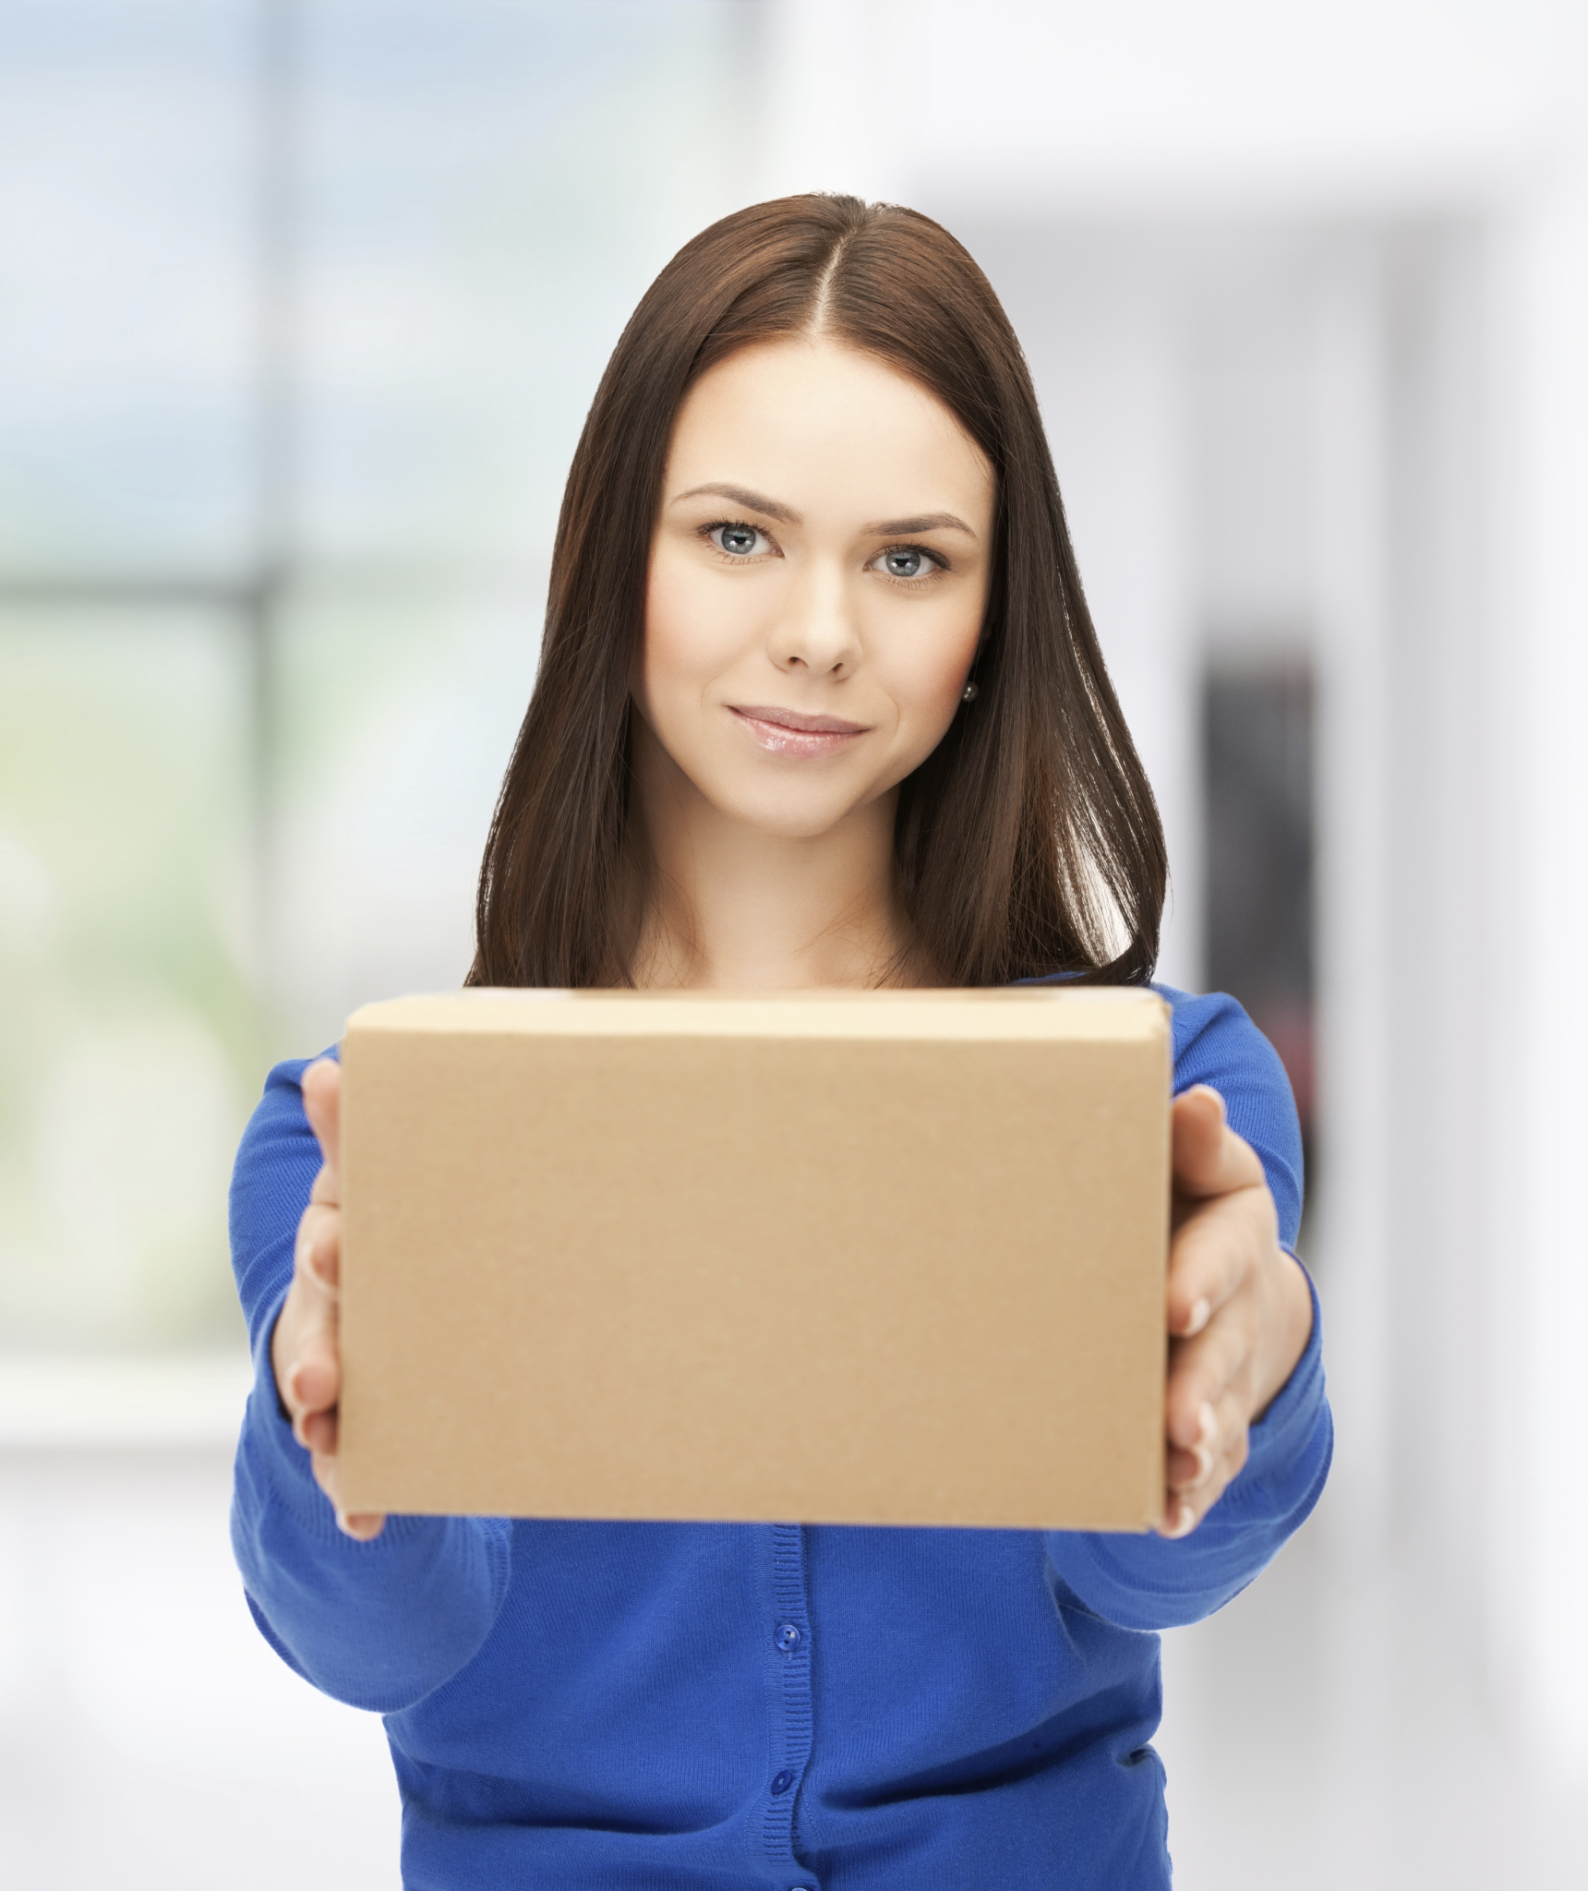 How to Find Out If Your Package Is Stuck at Customs | Bizfluent